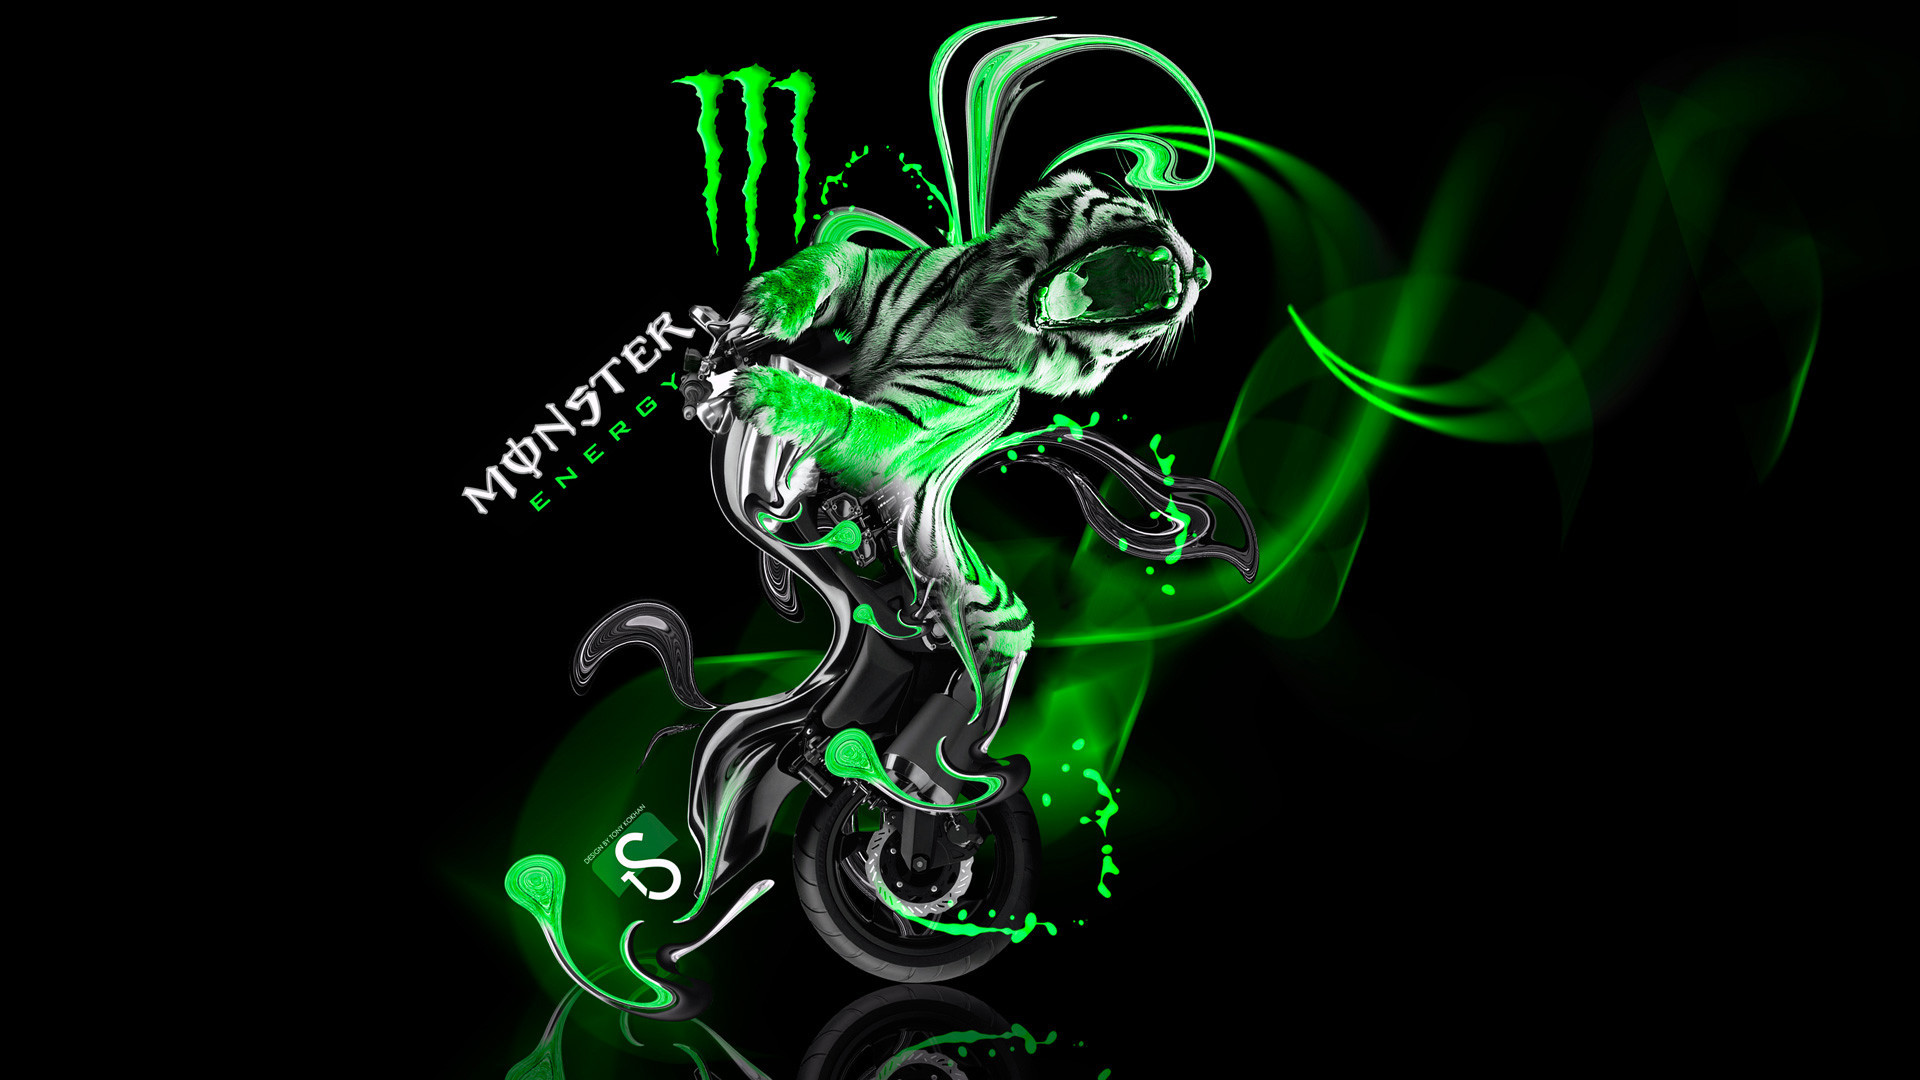 1920x1080 Graffitis De Monster Energy Monster Energy Wallpaper Hd | Pixelstalk .